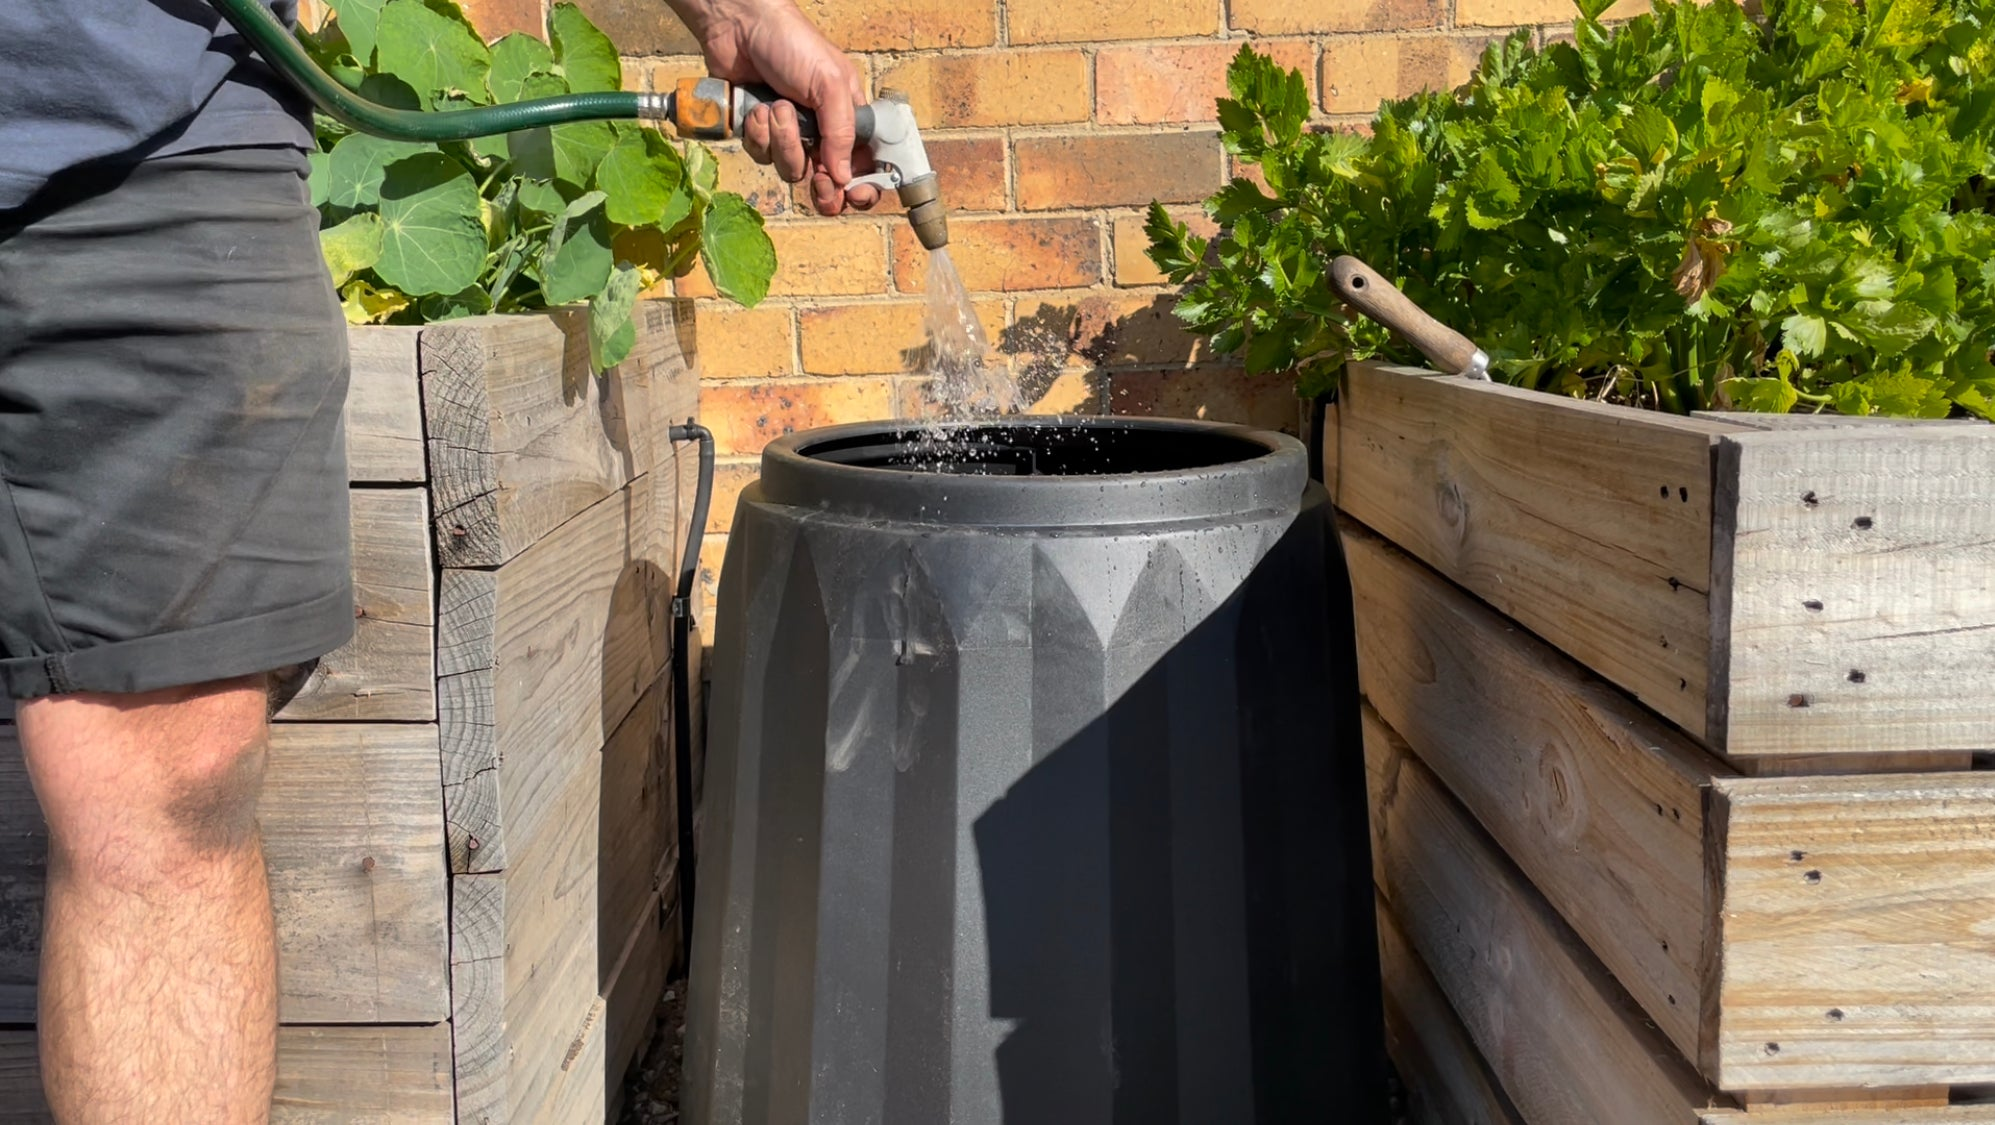 add water to your compost to keep it moist